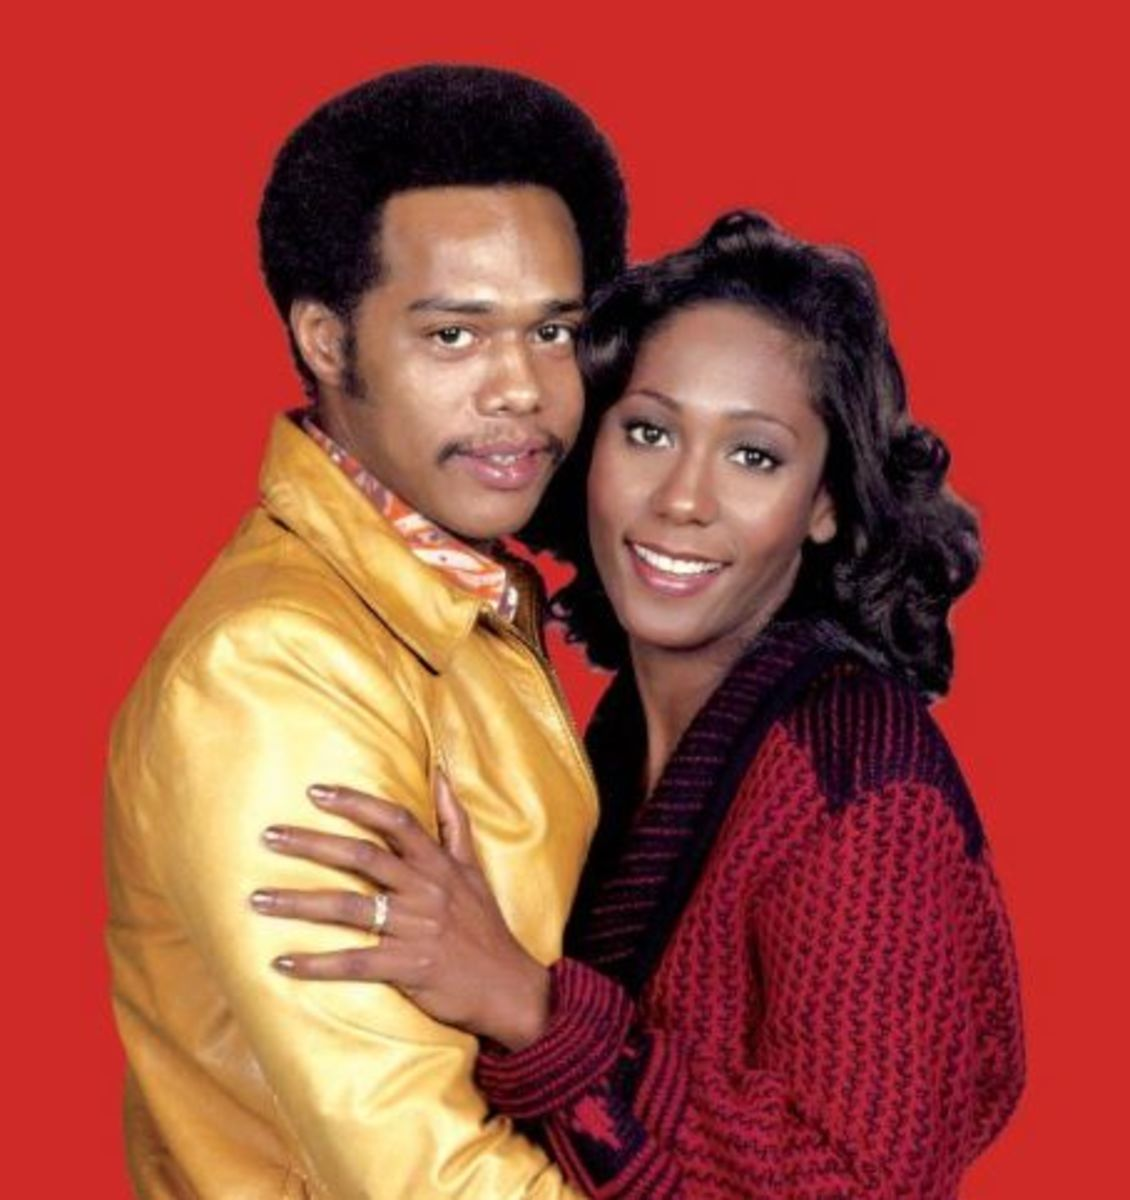 Whatever Happened to Mike Evans and Berlinda Tolbert (Lionel and Jenny Jefferson) From 'The Jeffersons'?